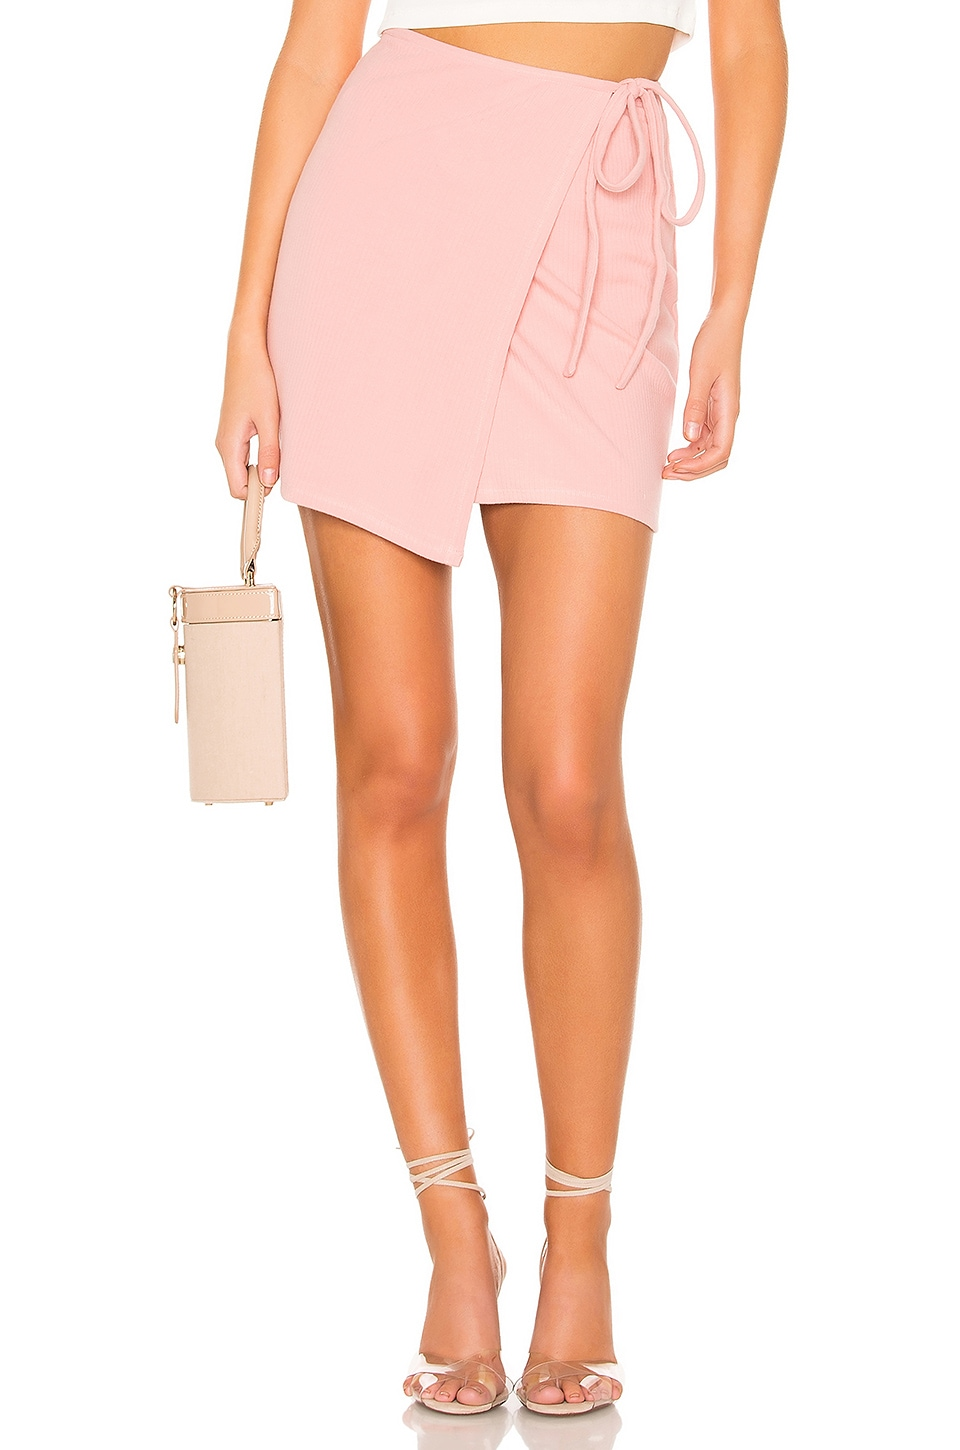 Privacy Please Miller Skirt in Pink